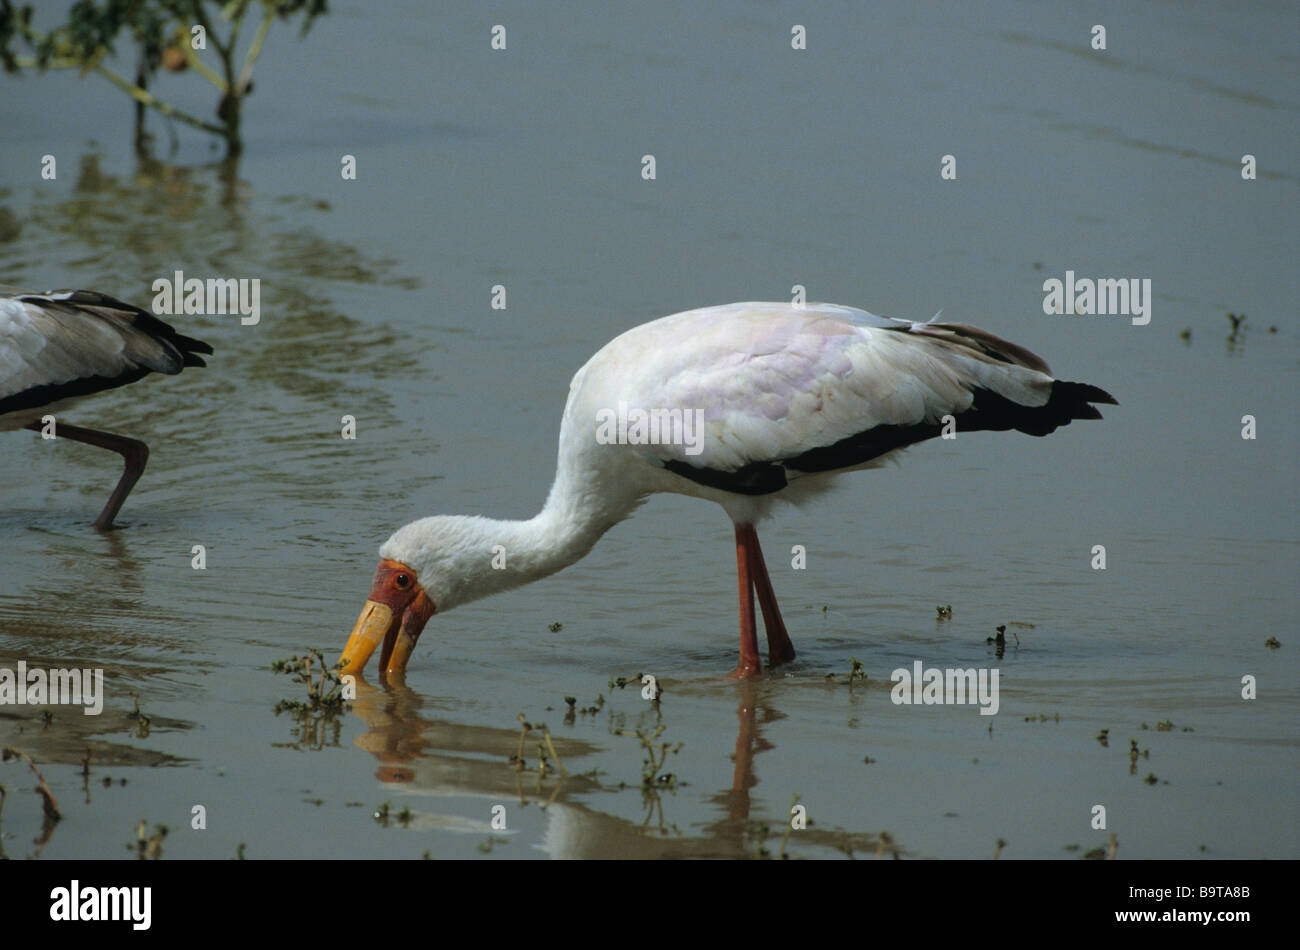 Yellow-billed Stork (Mycteria ibis) adult feeding in shallow water Stock Photo